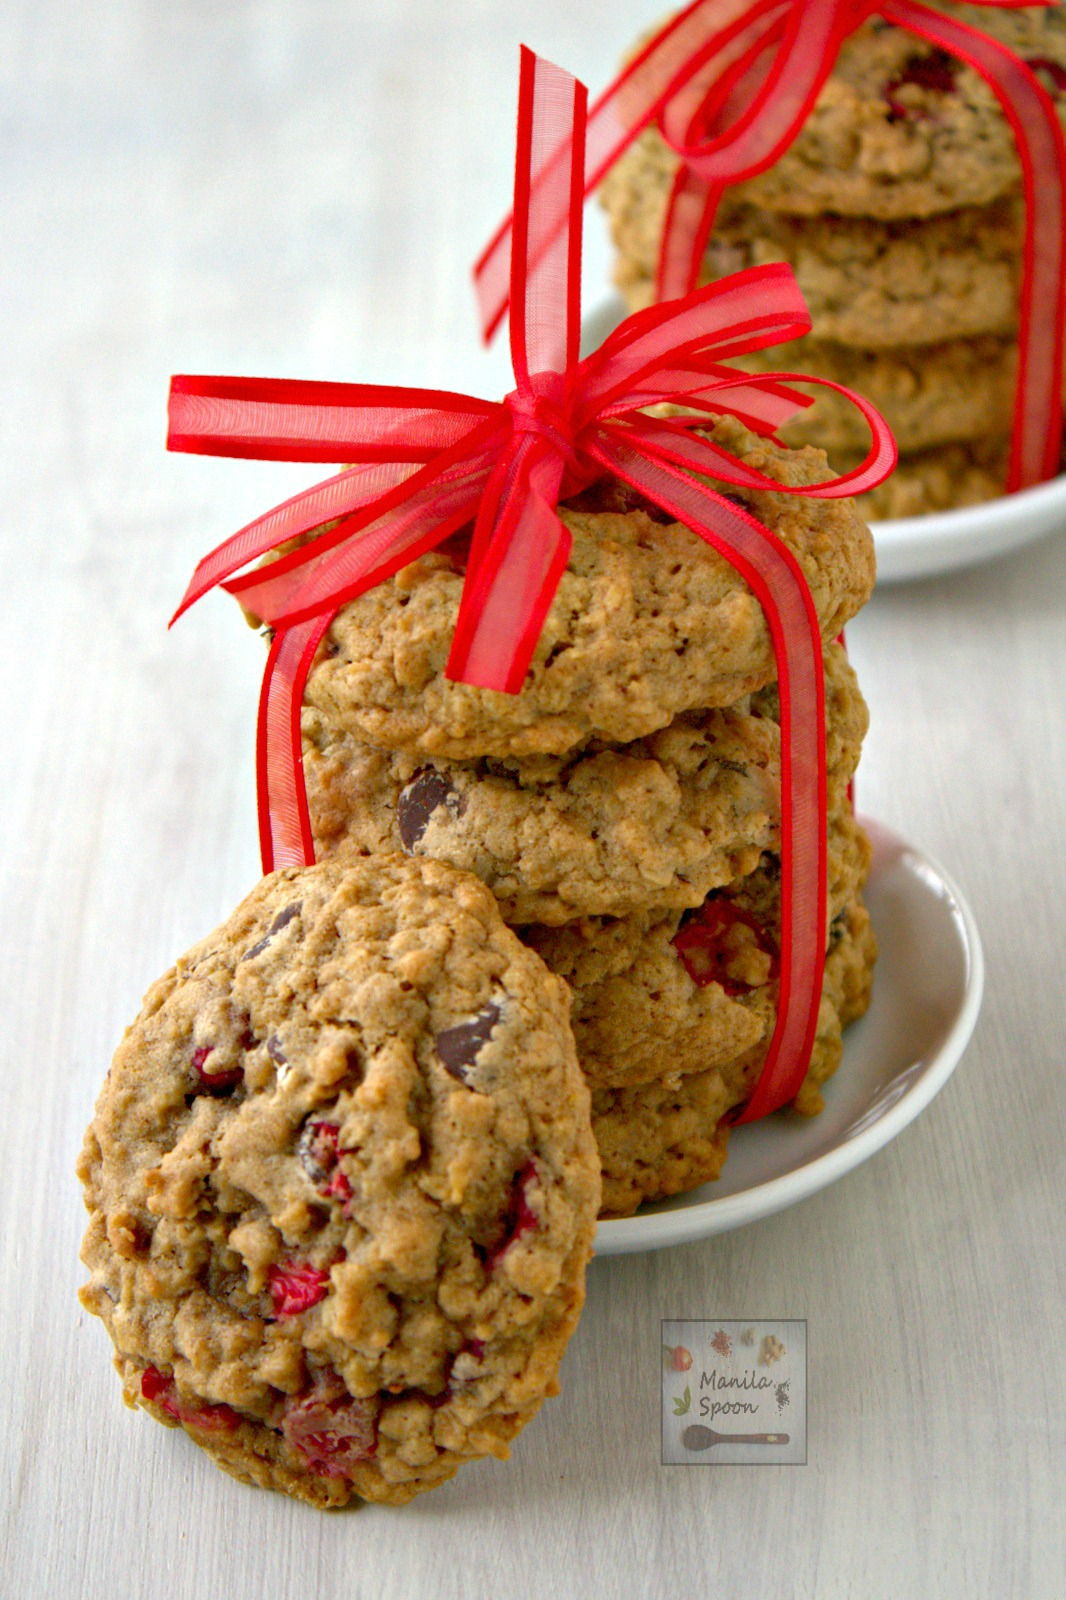 Chewy, moist and delicious cookies!! Cranberries give these yummy cookies a fresh tangy flavor which perfectly contrasts with chocolate and cinnamon spice. Perfect sweet treat for Thanksgiving, Christmas and New Year!